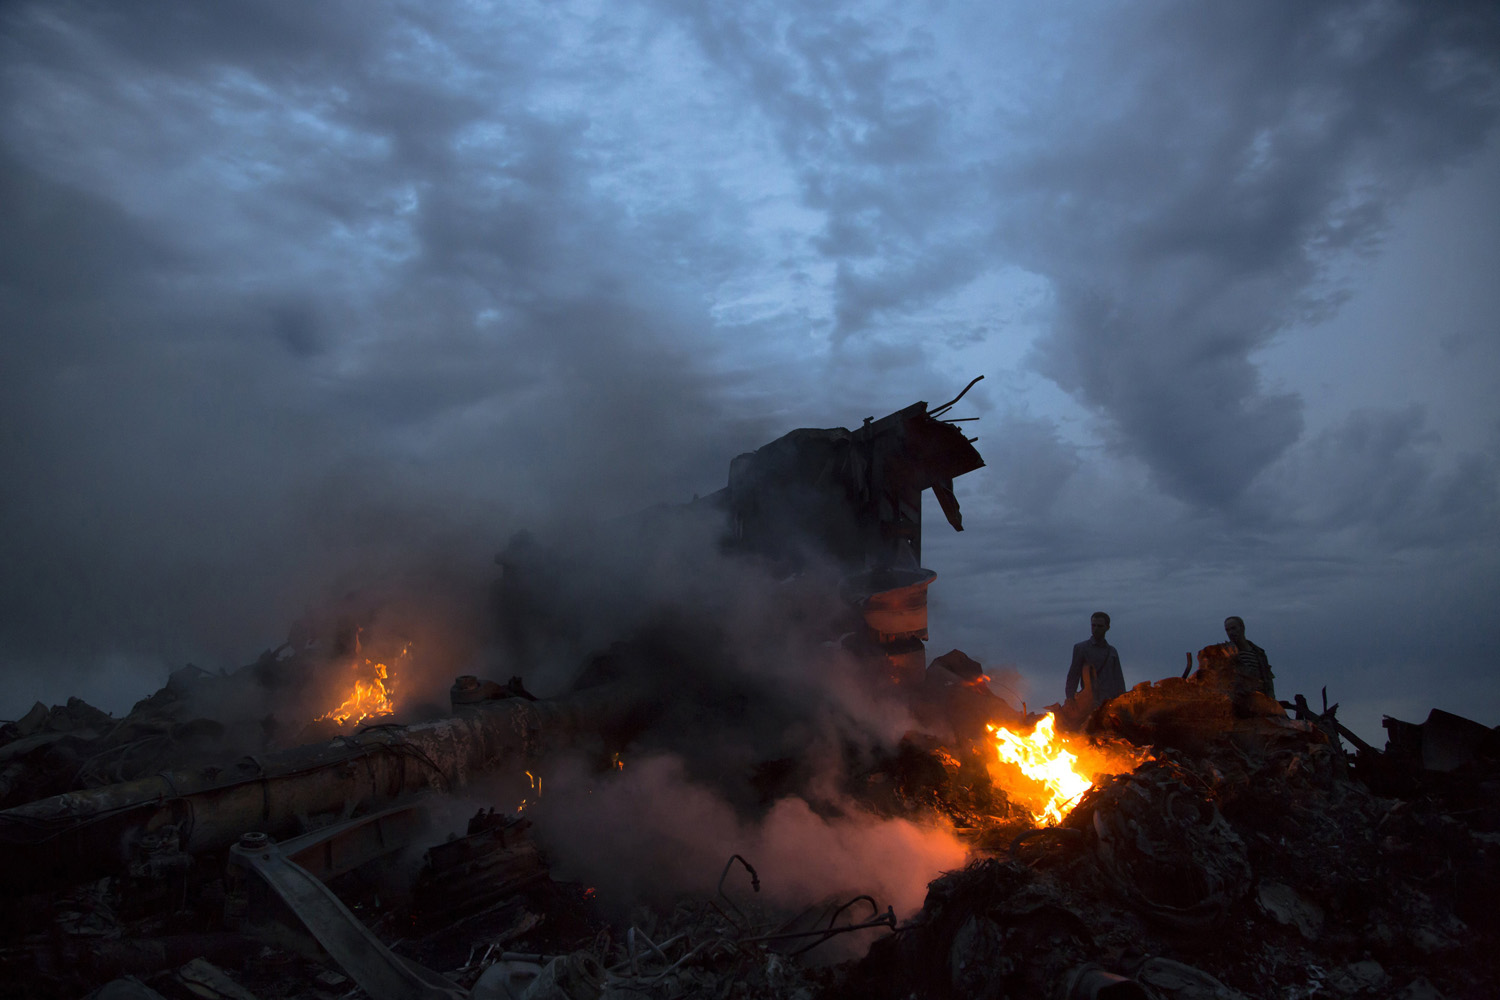 Jul. 17, 2014. People walk amongst the debris at the crash site of a passenger plane near the village of Grabovo, Ukraine, The passenger plane carrying 295 people was reported to have been shot down as it flew over the country. Both the government and the pro-Russia separatists fighting in the region denied any responsibility for downing the plane.